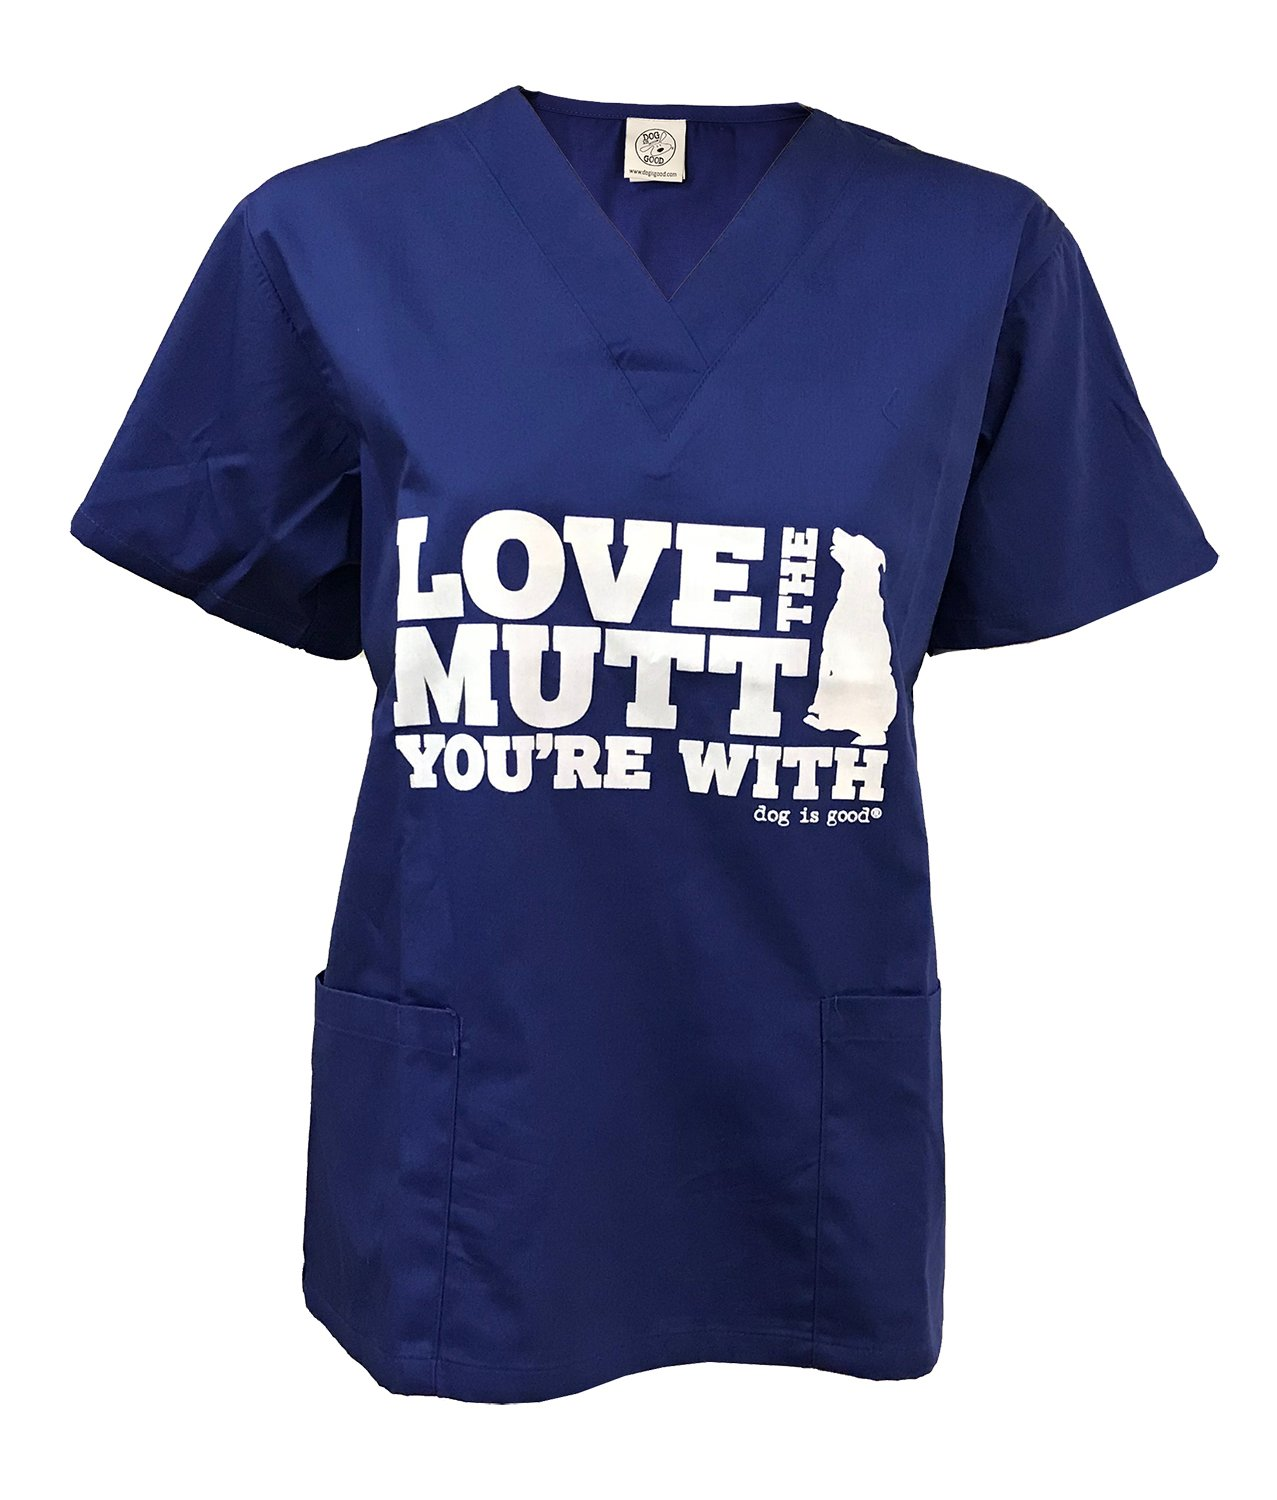 Dog is Good Love The Mutt You're With Scrub Top (Blue, X-Large)